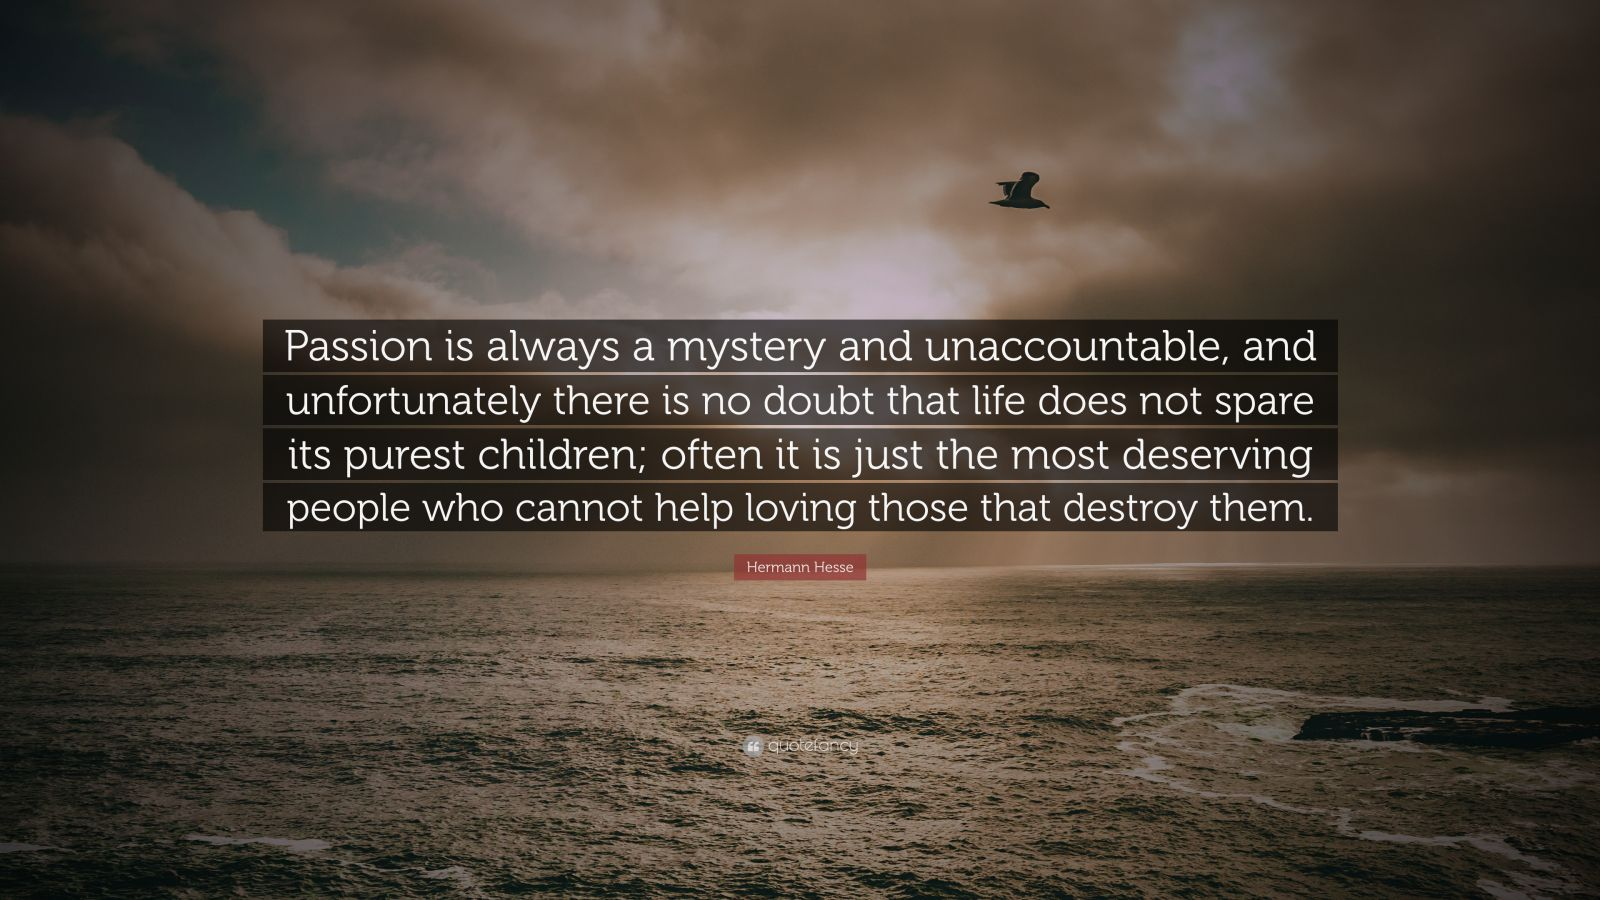 "Hermann Hesse Quote: ""Passion is always a mystery and unaccountable, and unfortunately there is no doubt that life does not spare its purest children; often it is just the most deserving people who cannot help loving those that destroy them."""